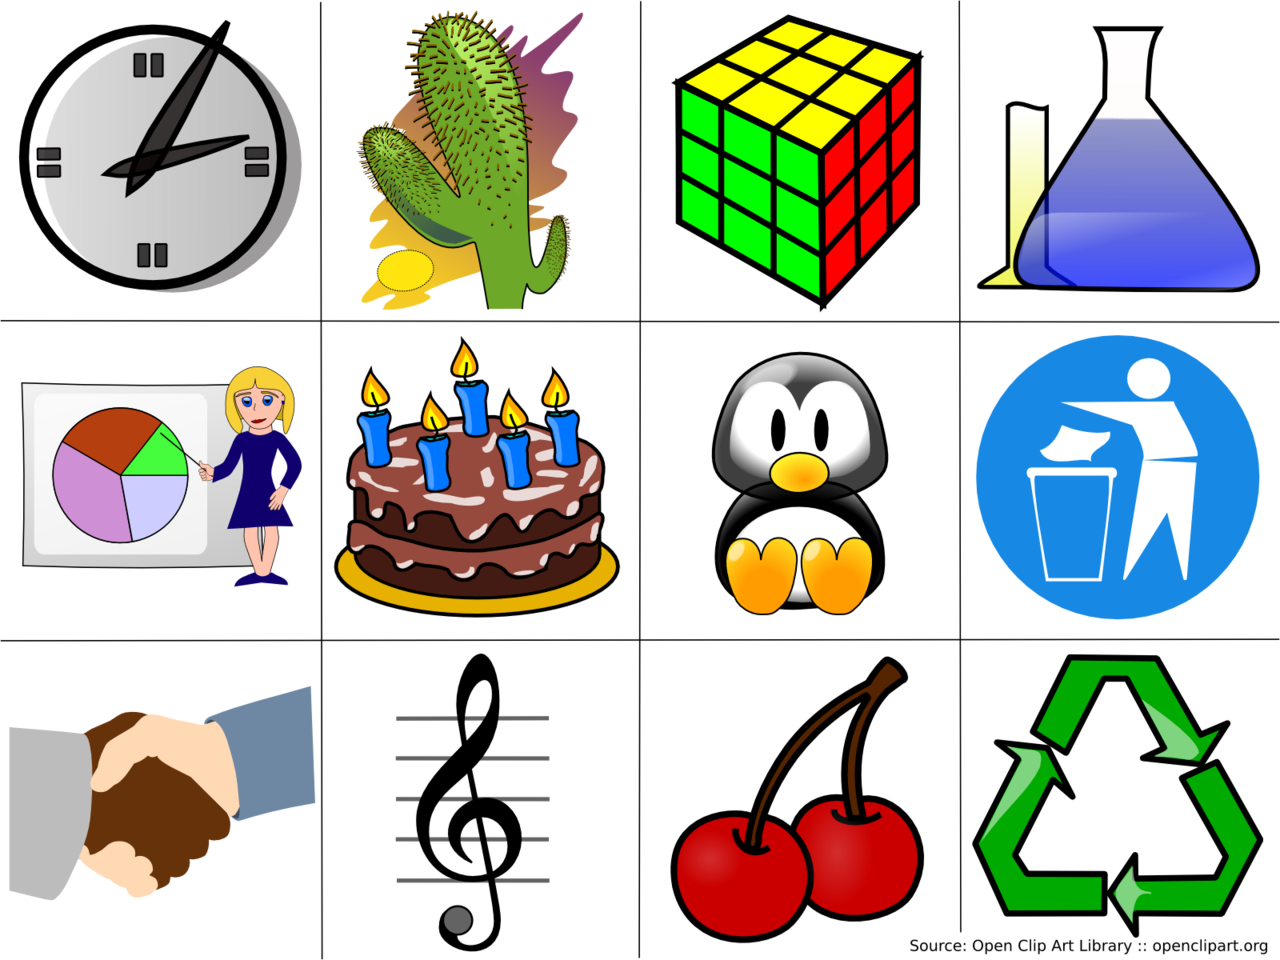 file cliparts examples png wikimedia commons rh commons wikimedia org pdclipart public domain clip art